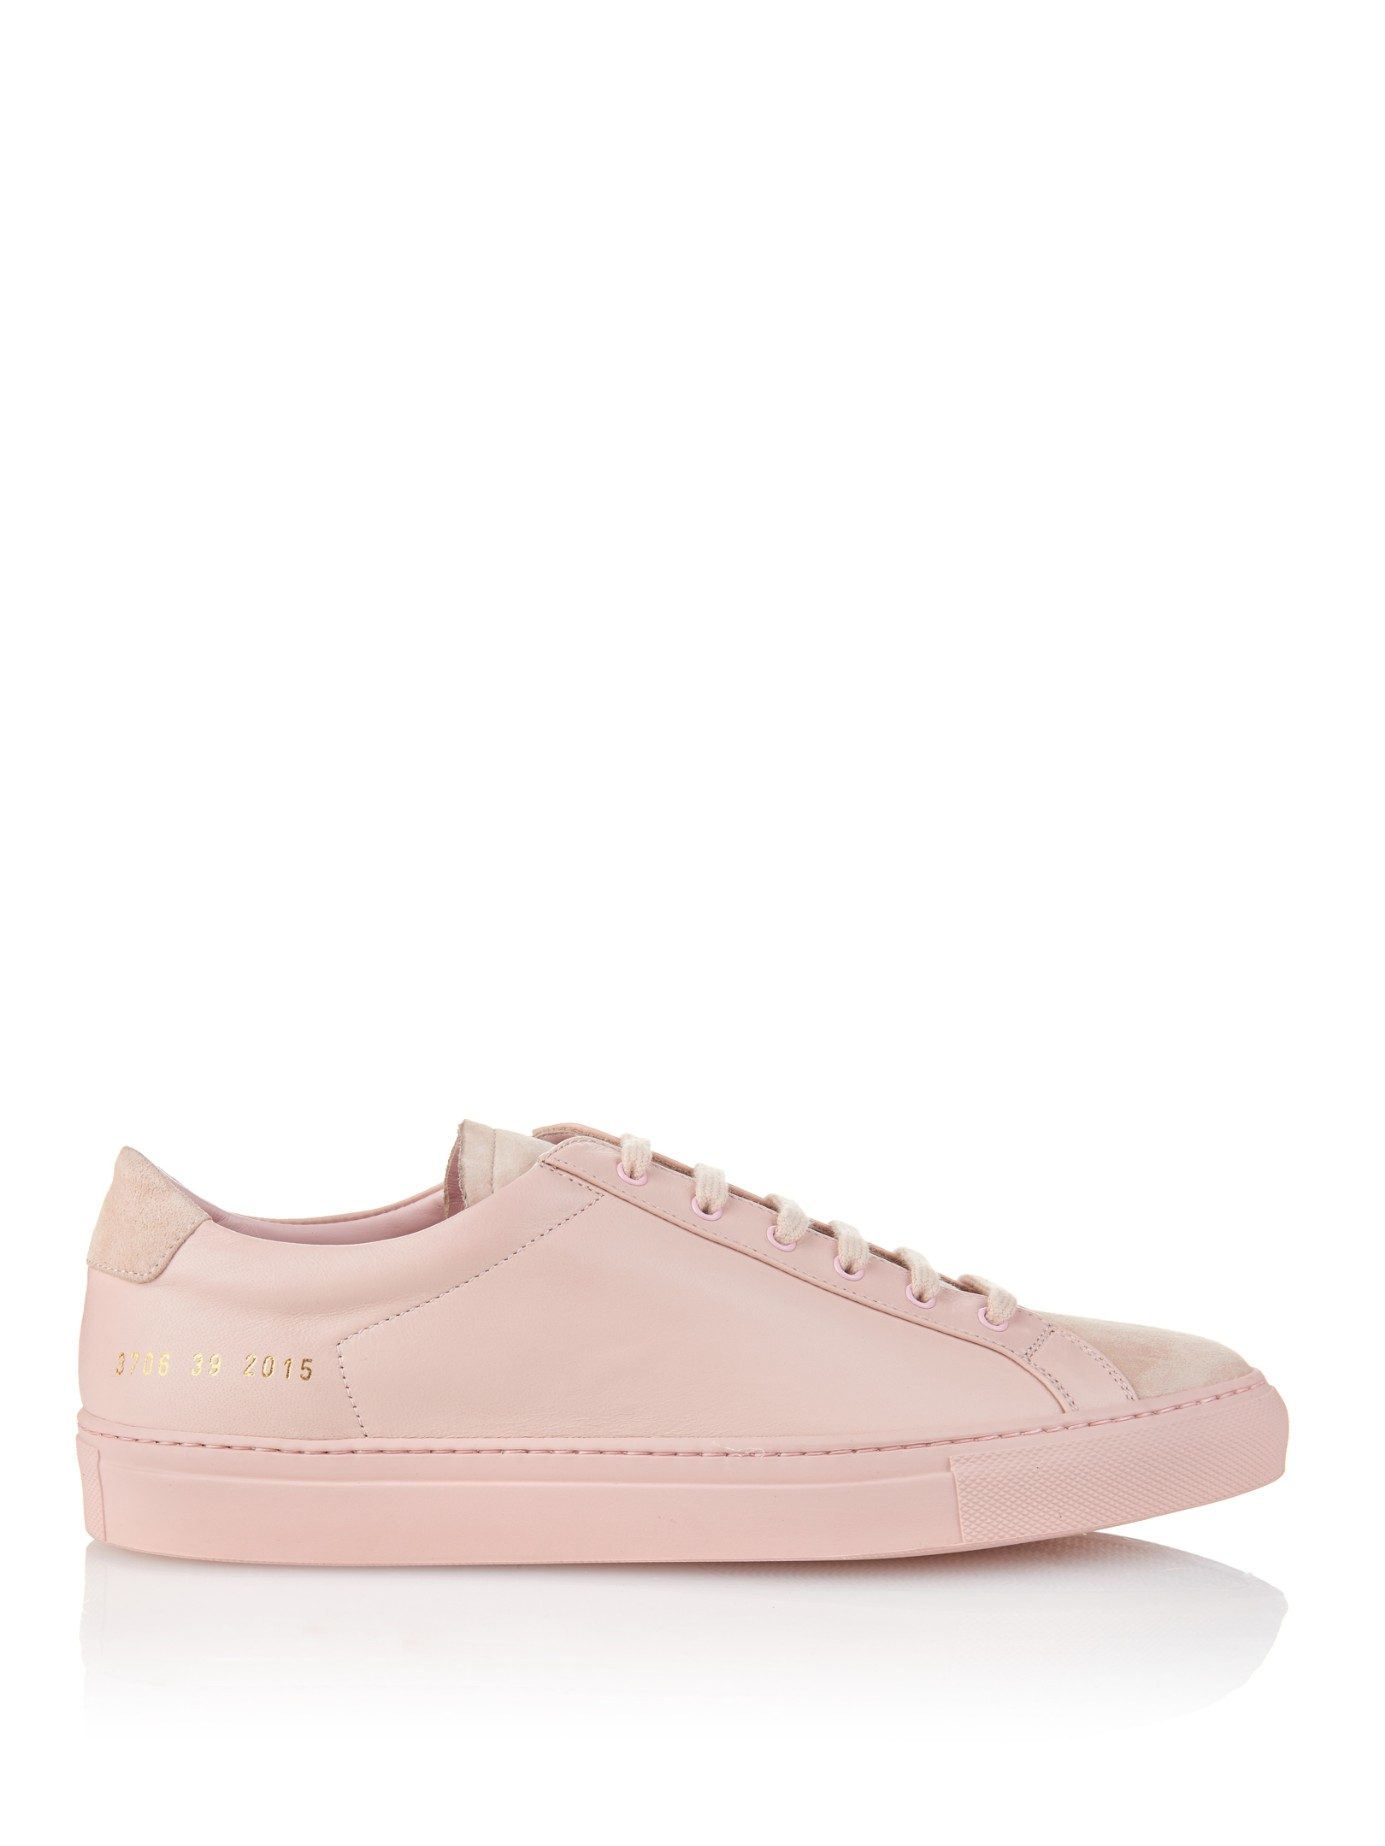 common projects original achilles low in pink save 13 lyst. Black Bedroom Furniture Sets. Home Design Ideas